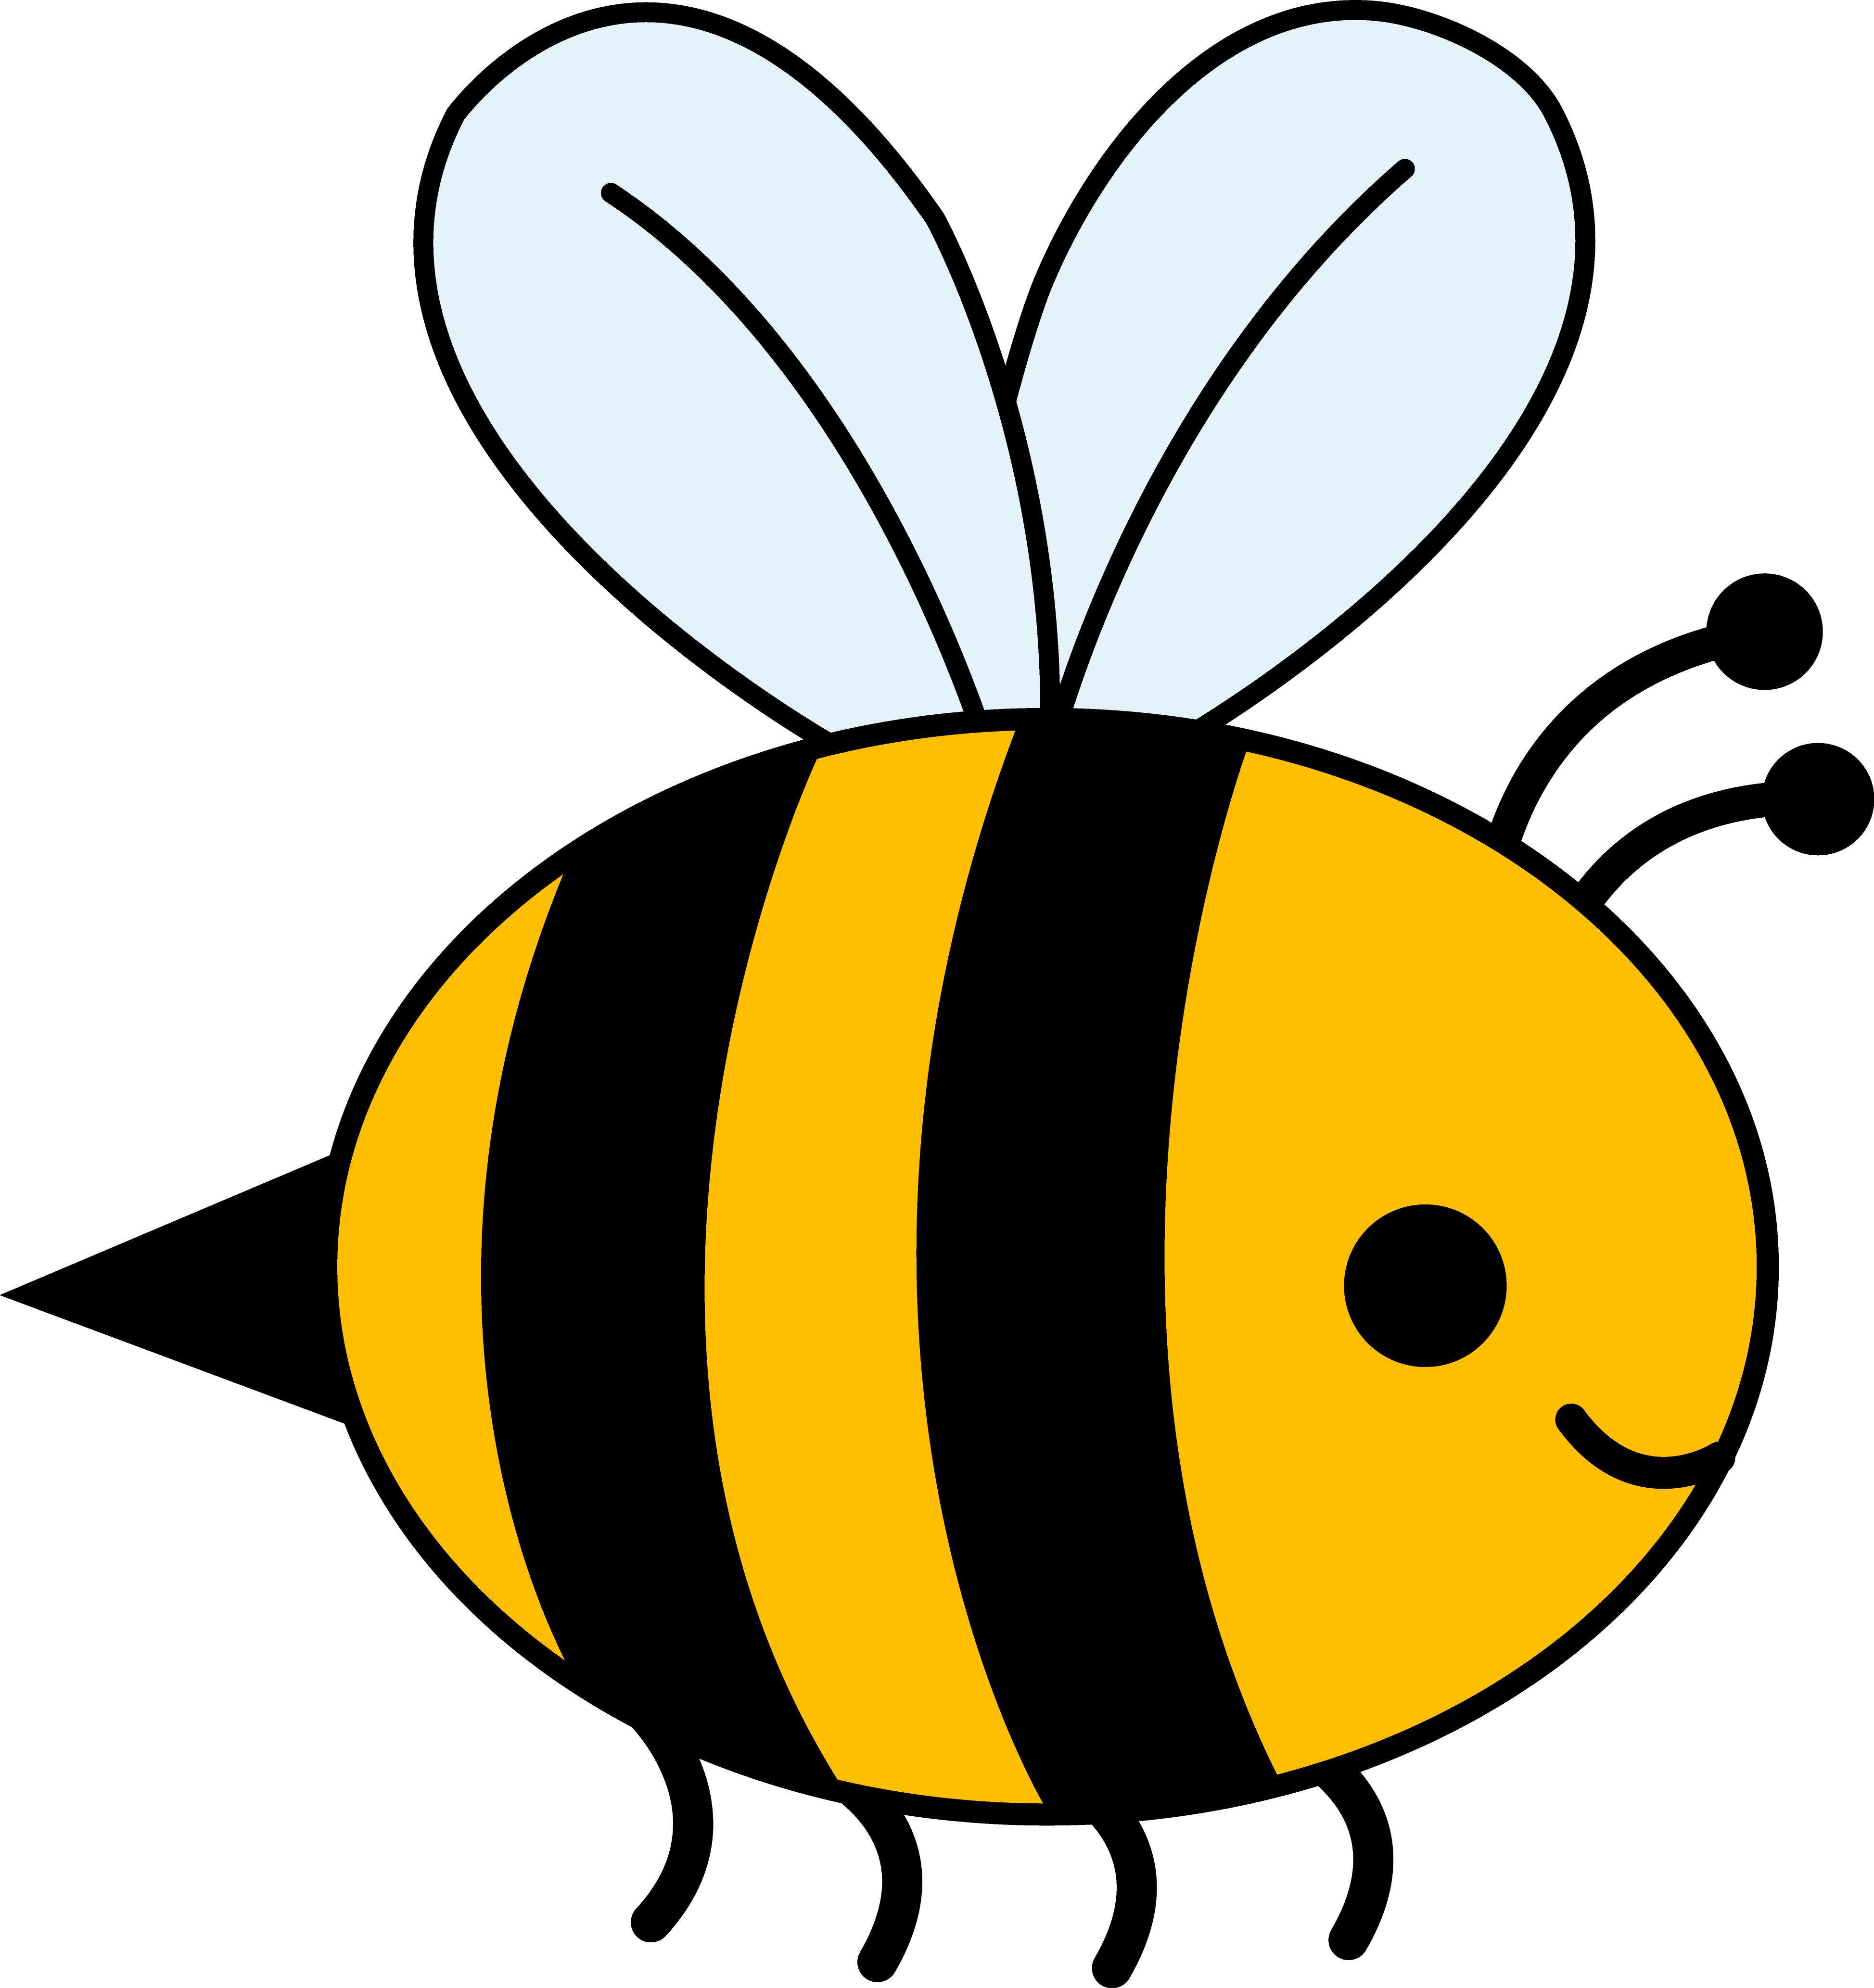 Housekeeping clipart cleaning bee. Why just